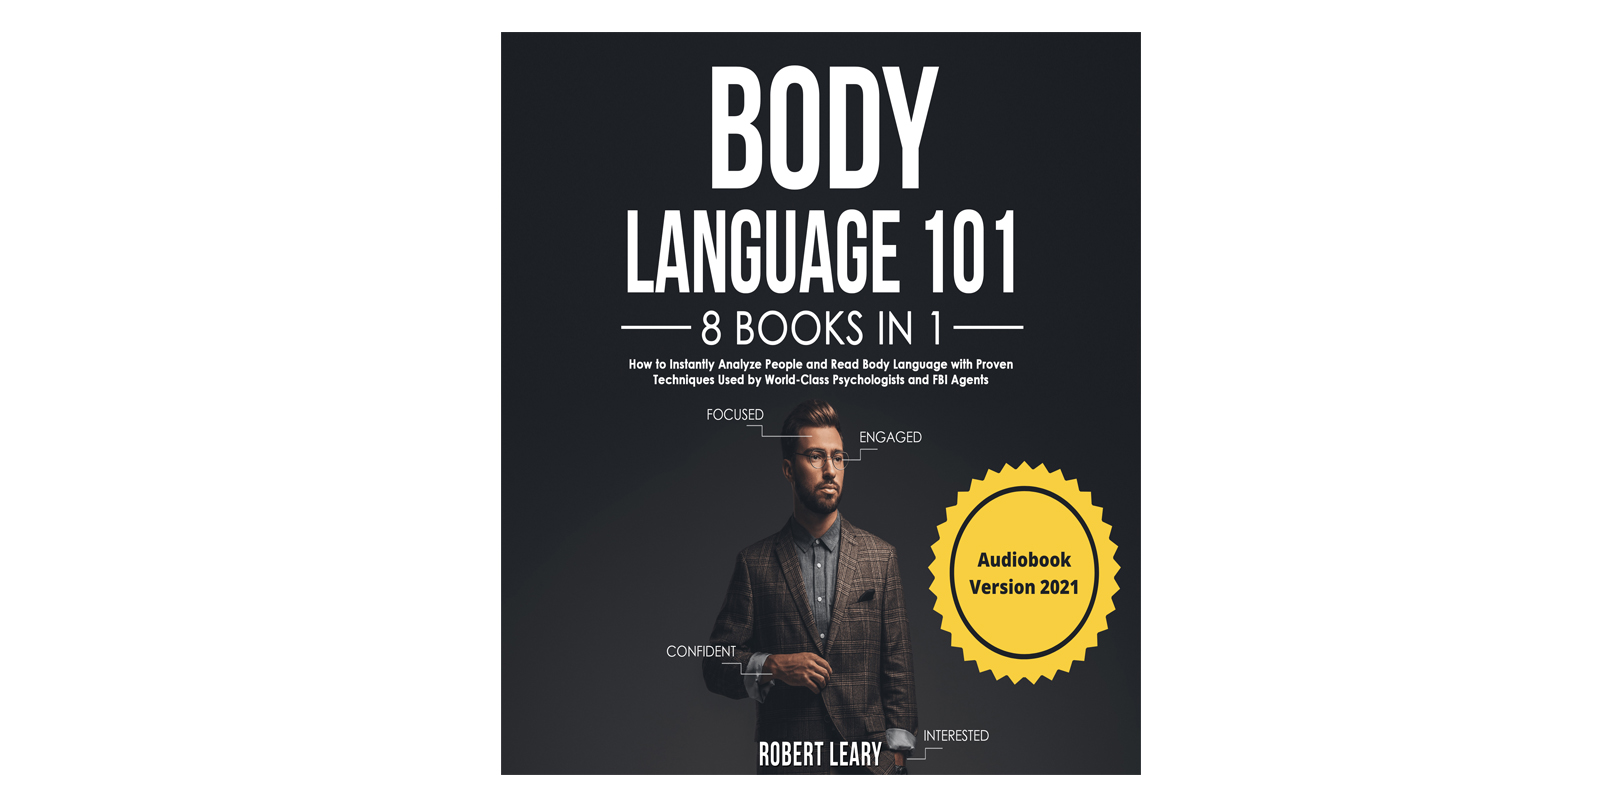 Body-Language-101-Reviews